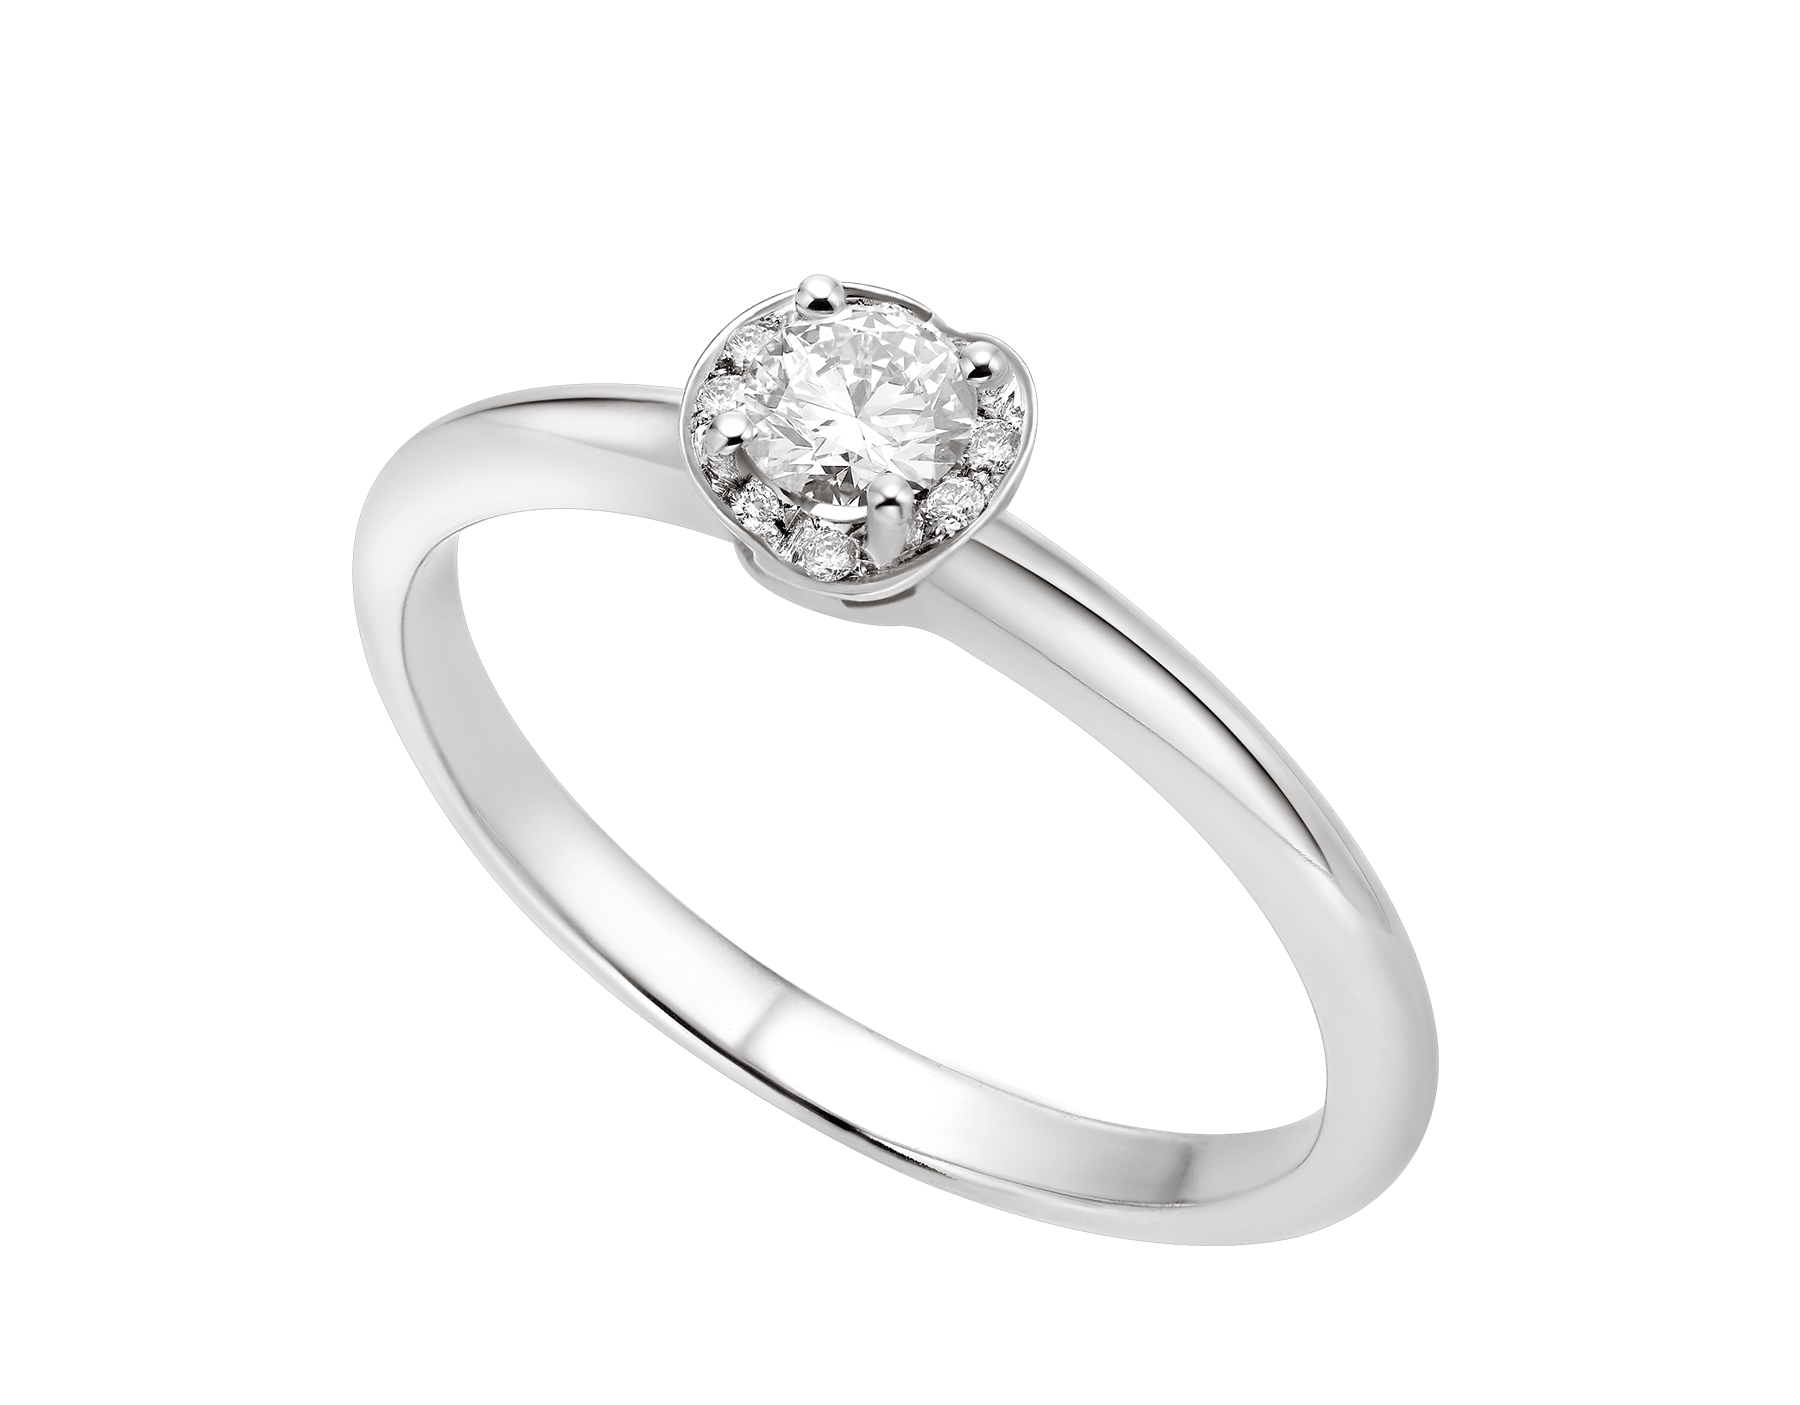 Incontro d'Amore platinum ring set with a round brilliant-cut diamond and a halo of pavé diamonds. 355363 image 1